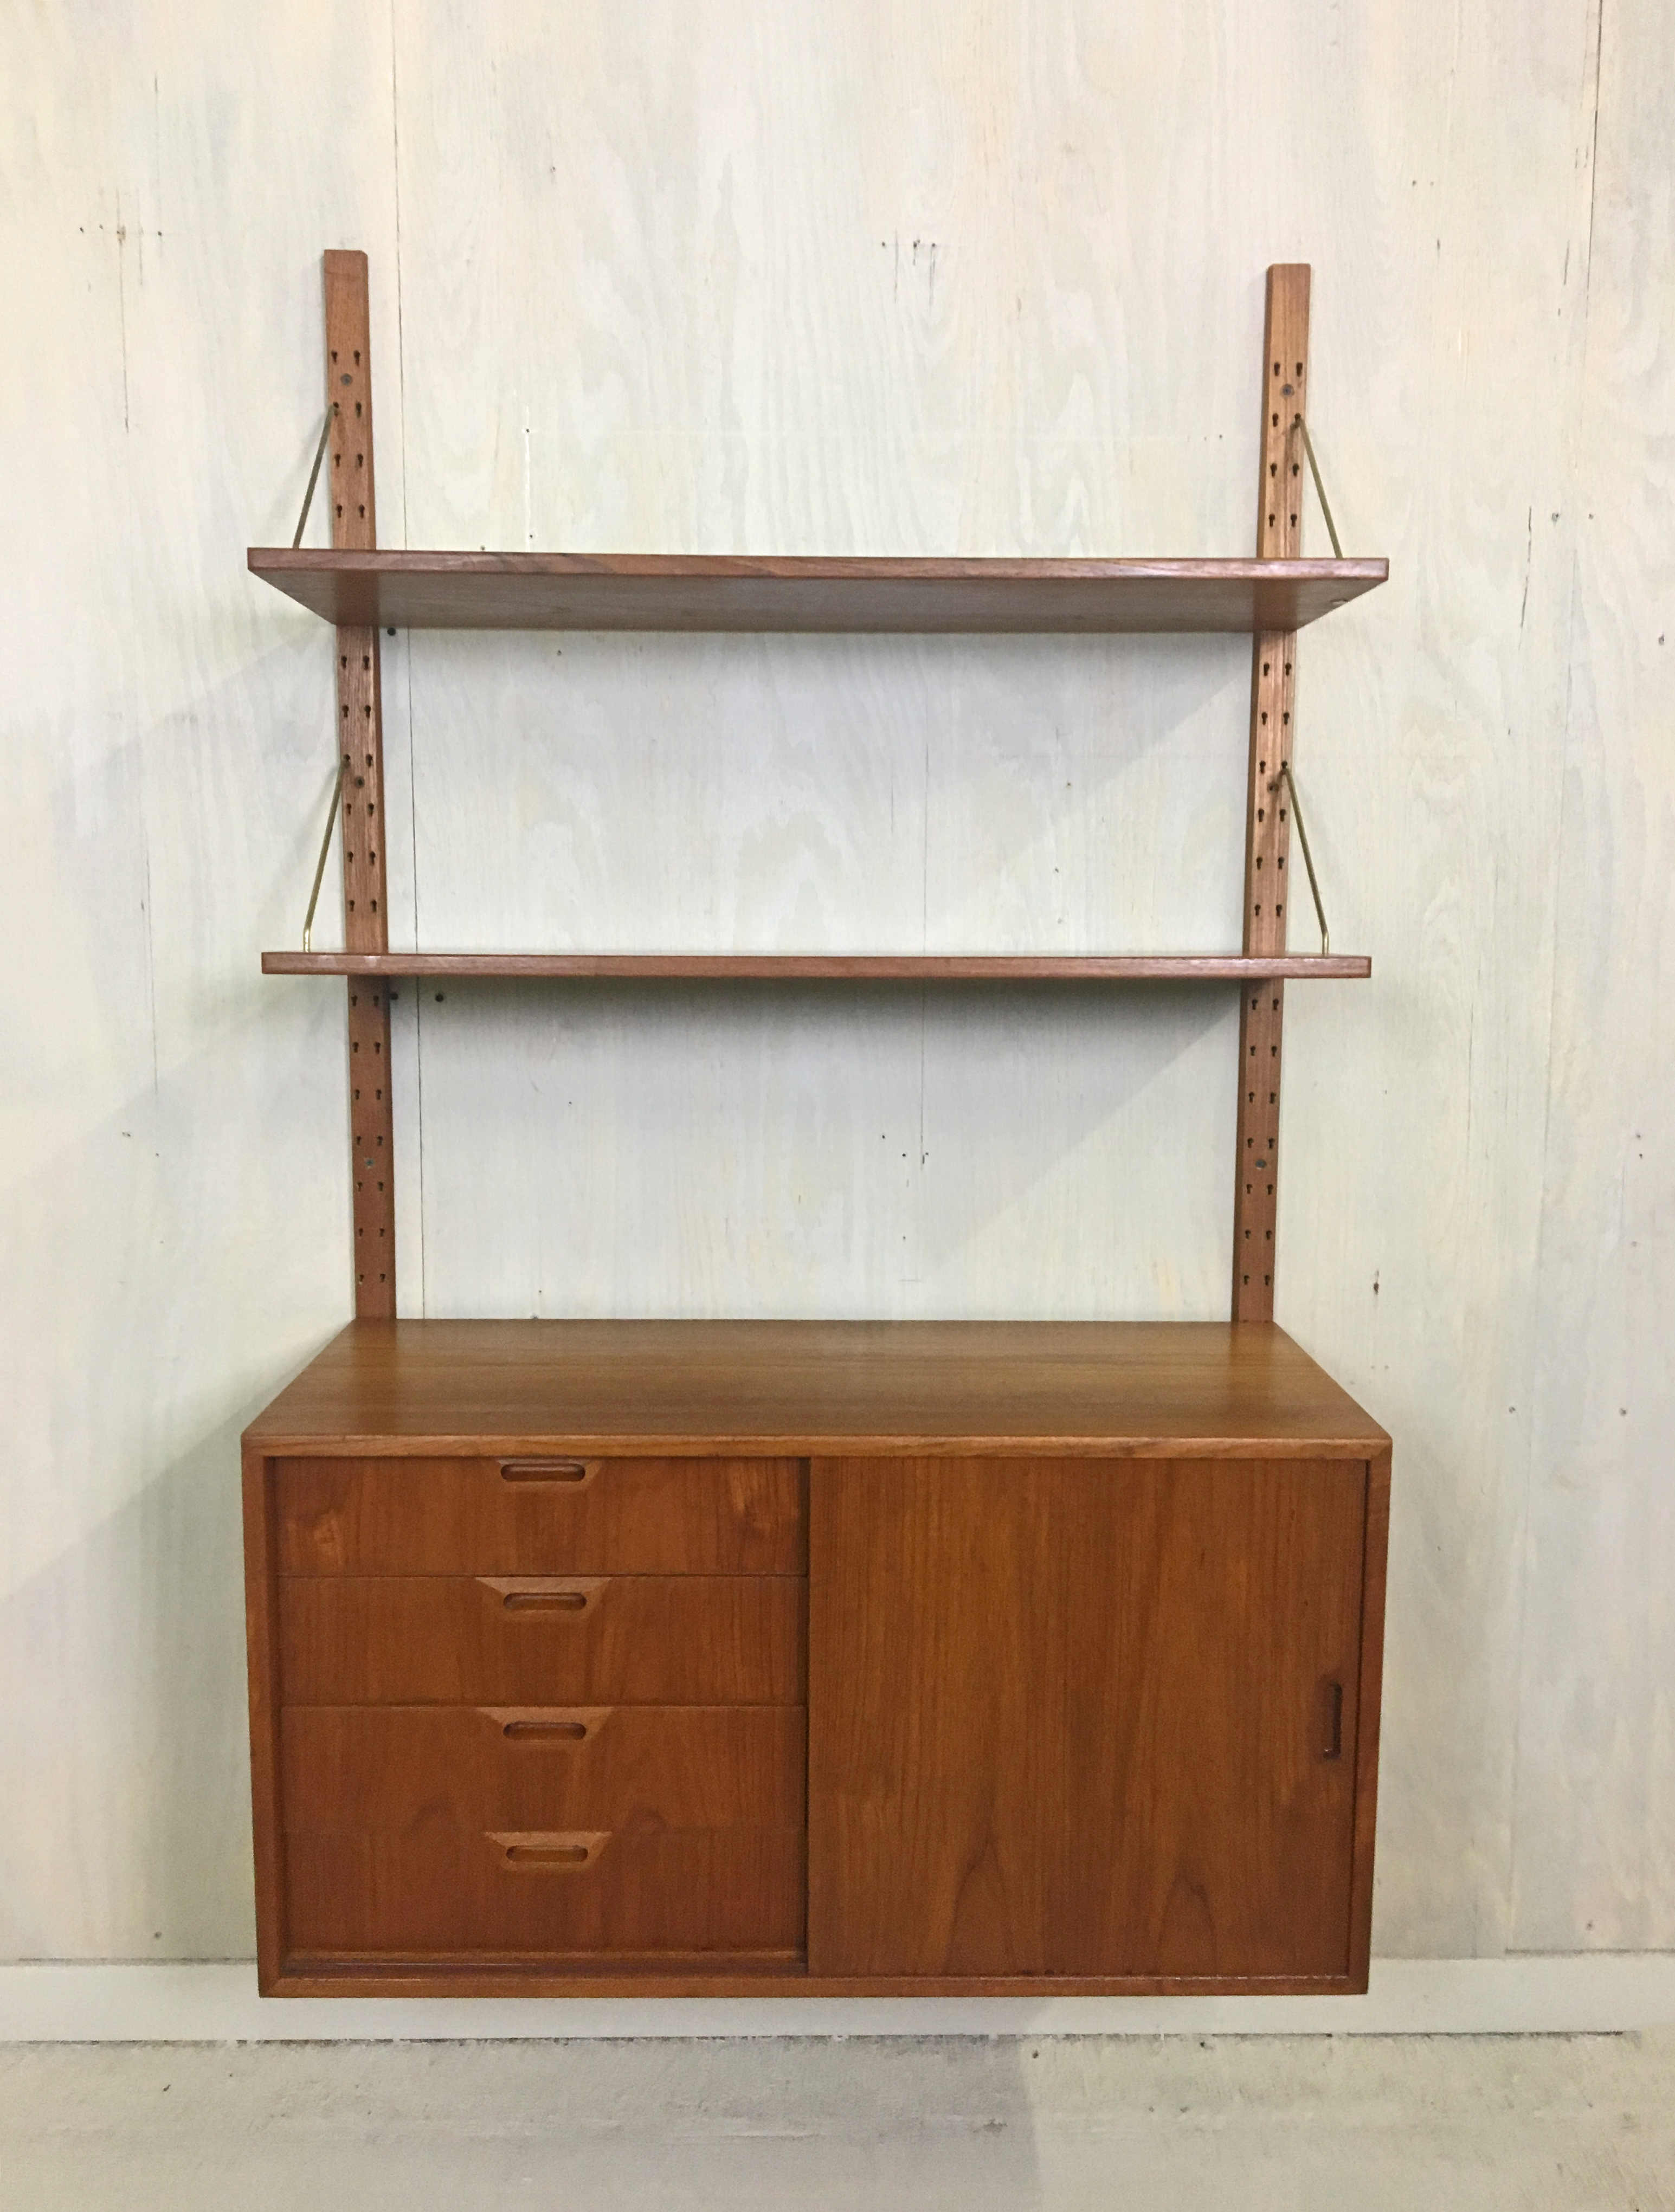 Teak Wall-Mounted Cado Cabinet and Shelving